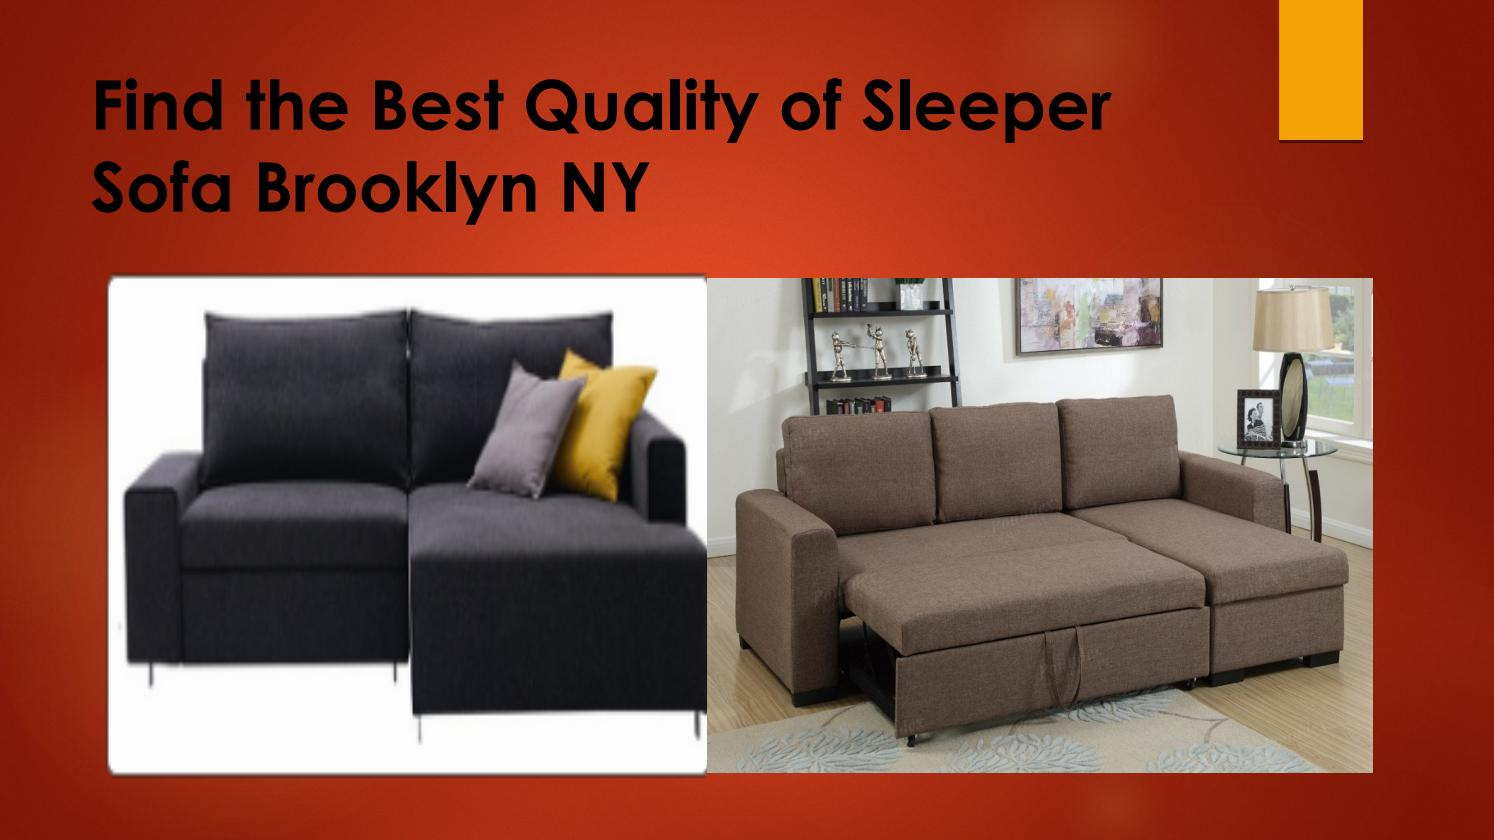 Find the Best Quality of Sleeper Sofa Brooklyn NY by GoGo ...